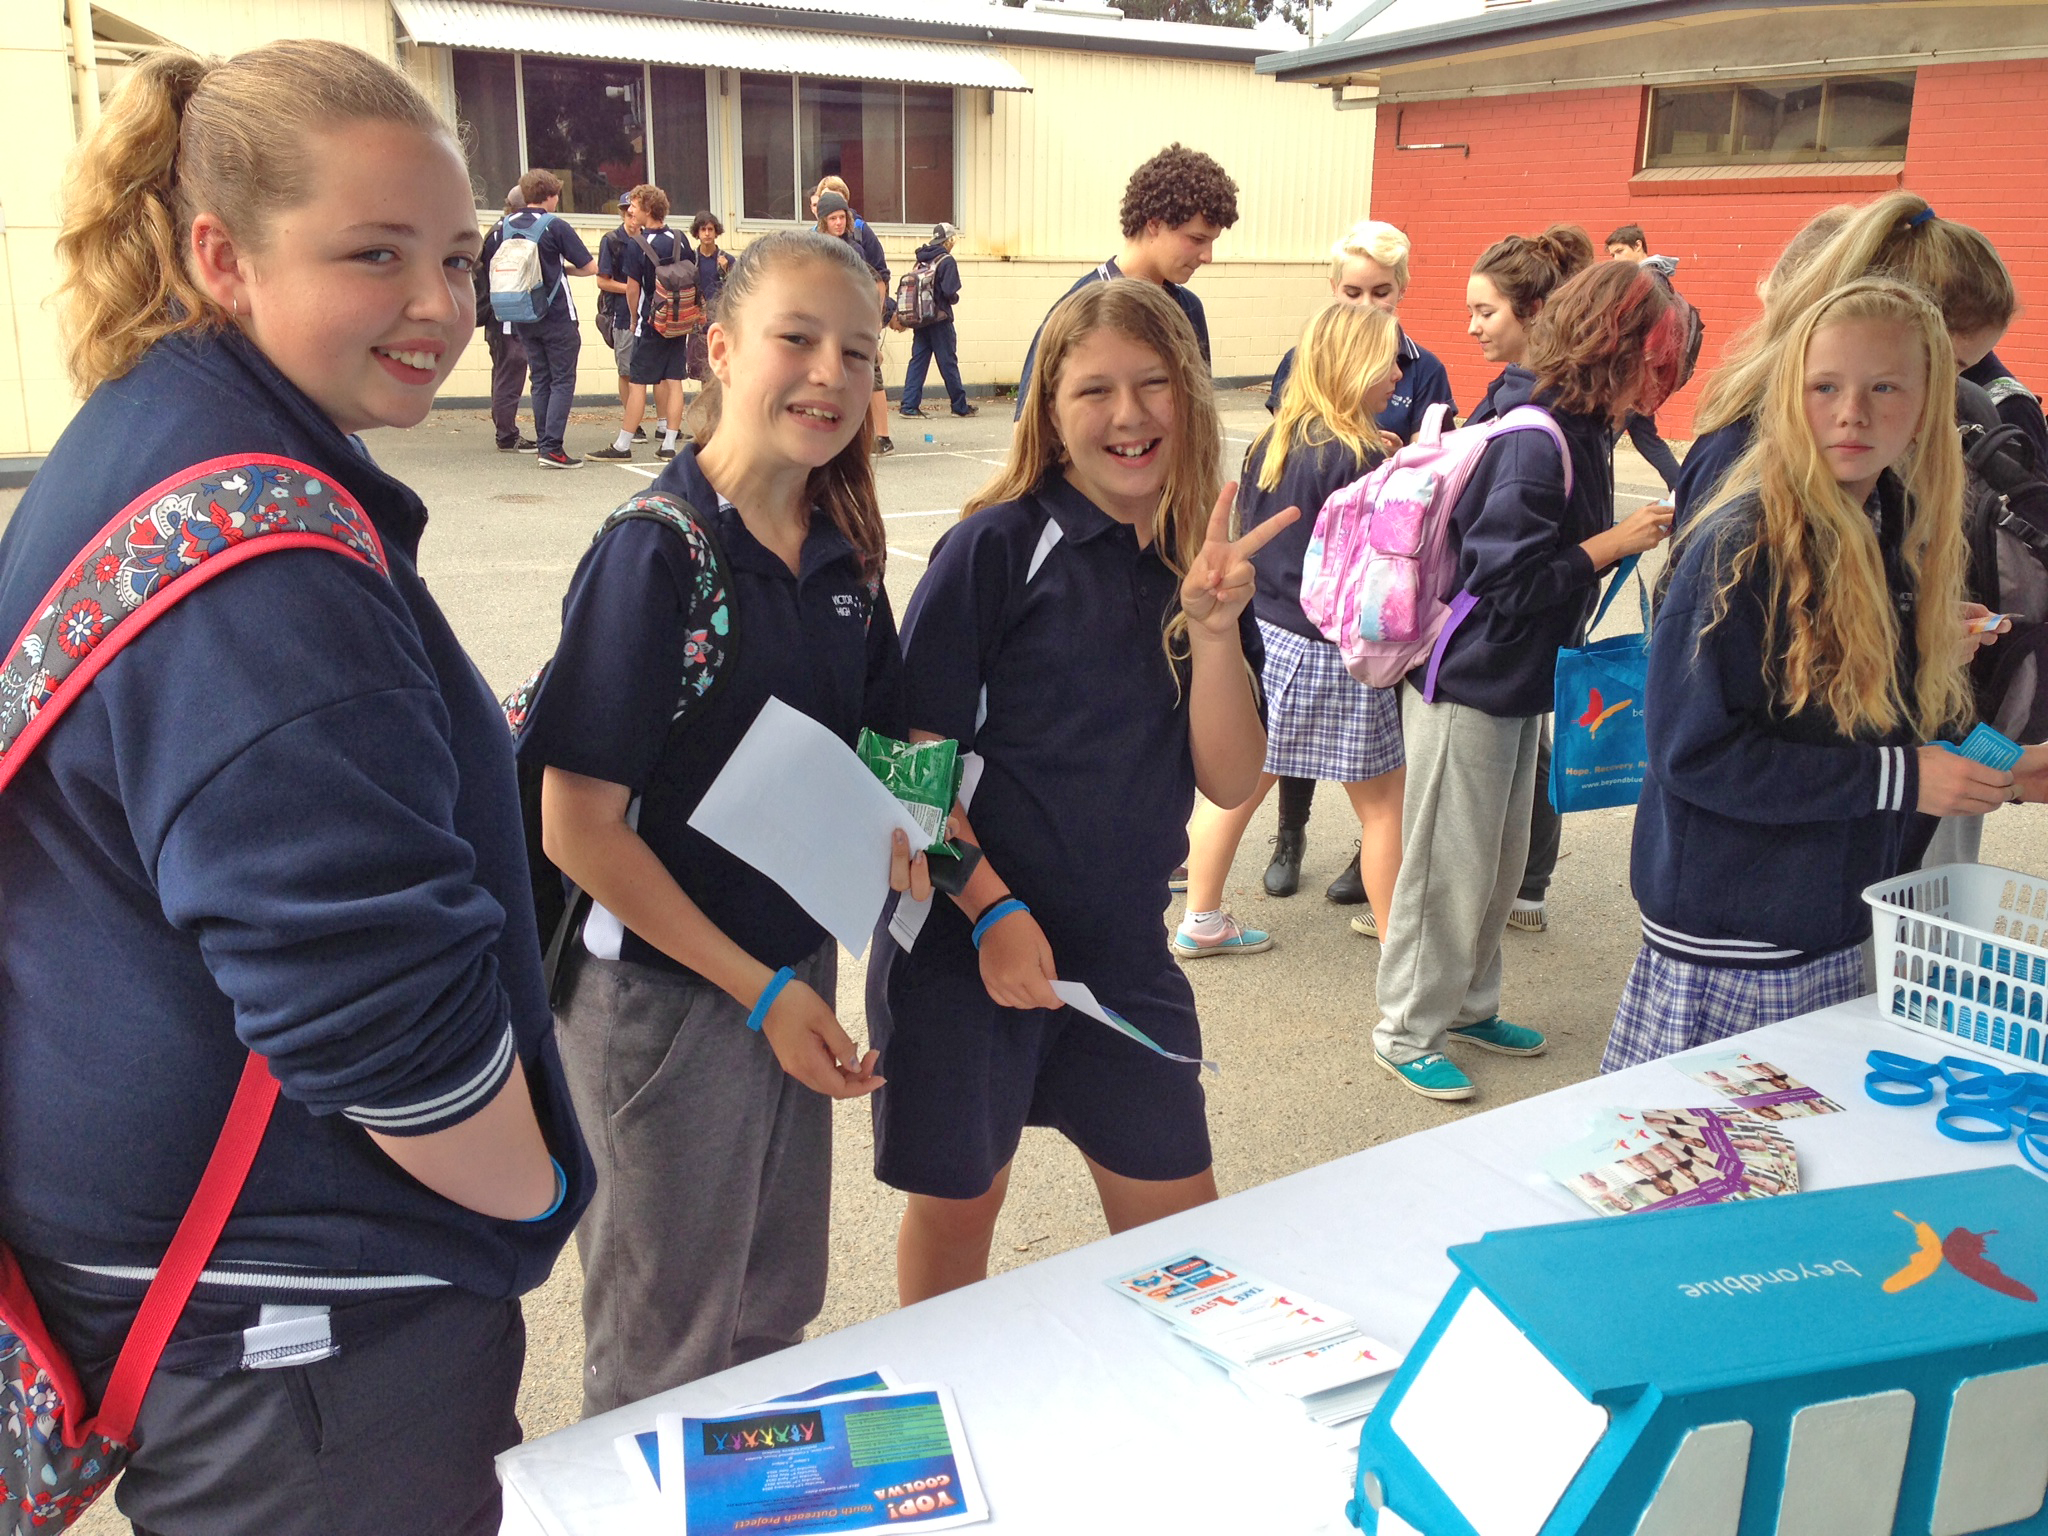 Students check out the Beyond Blue materials on offer.